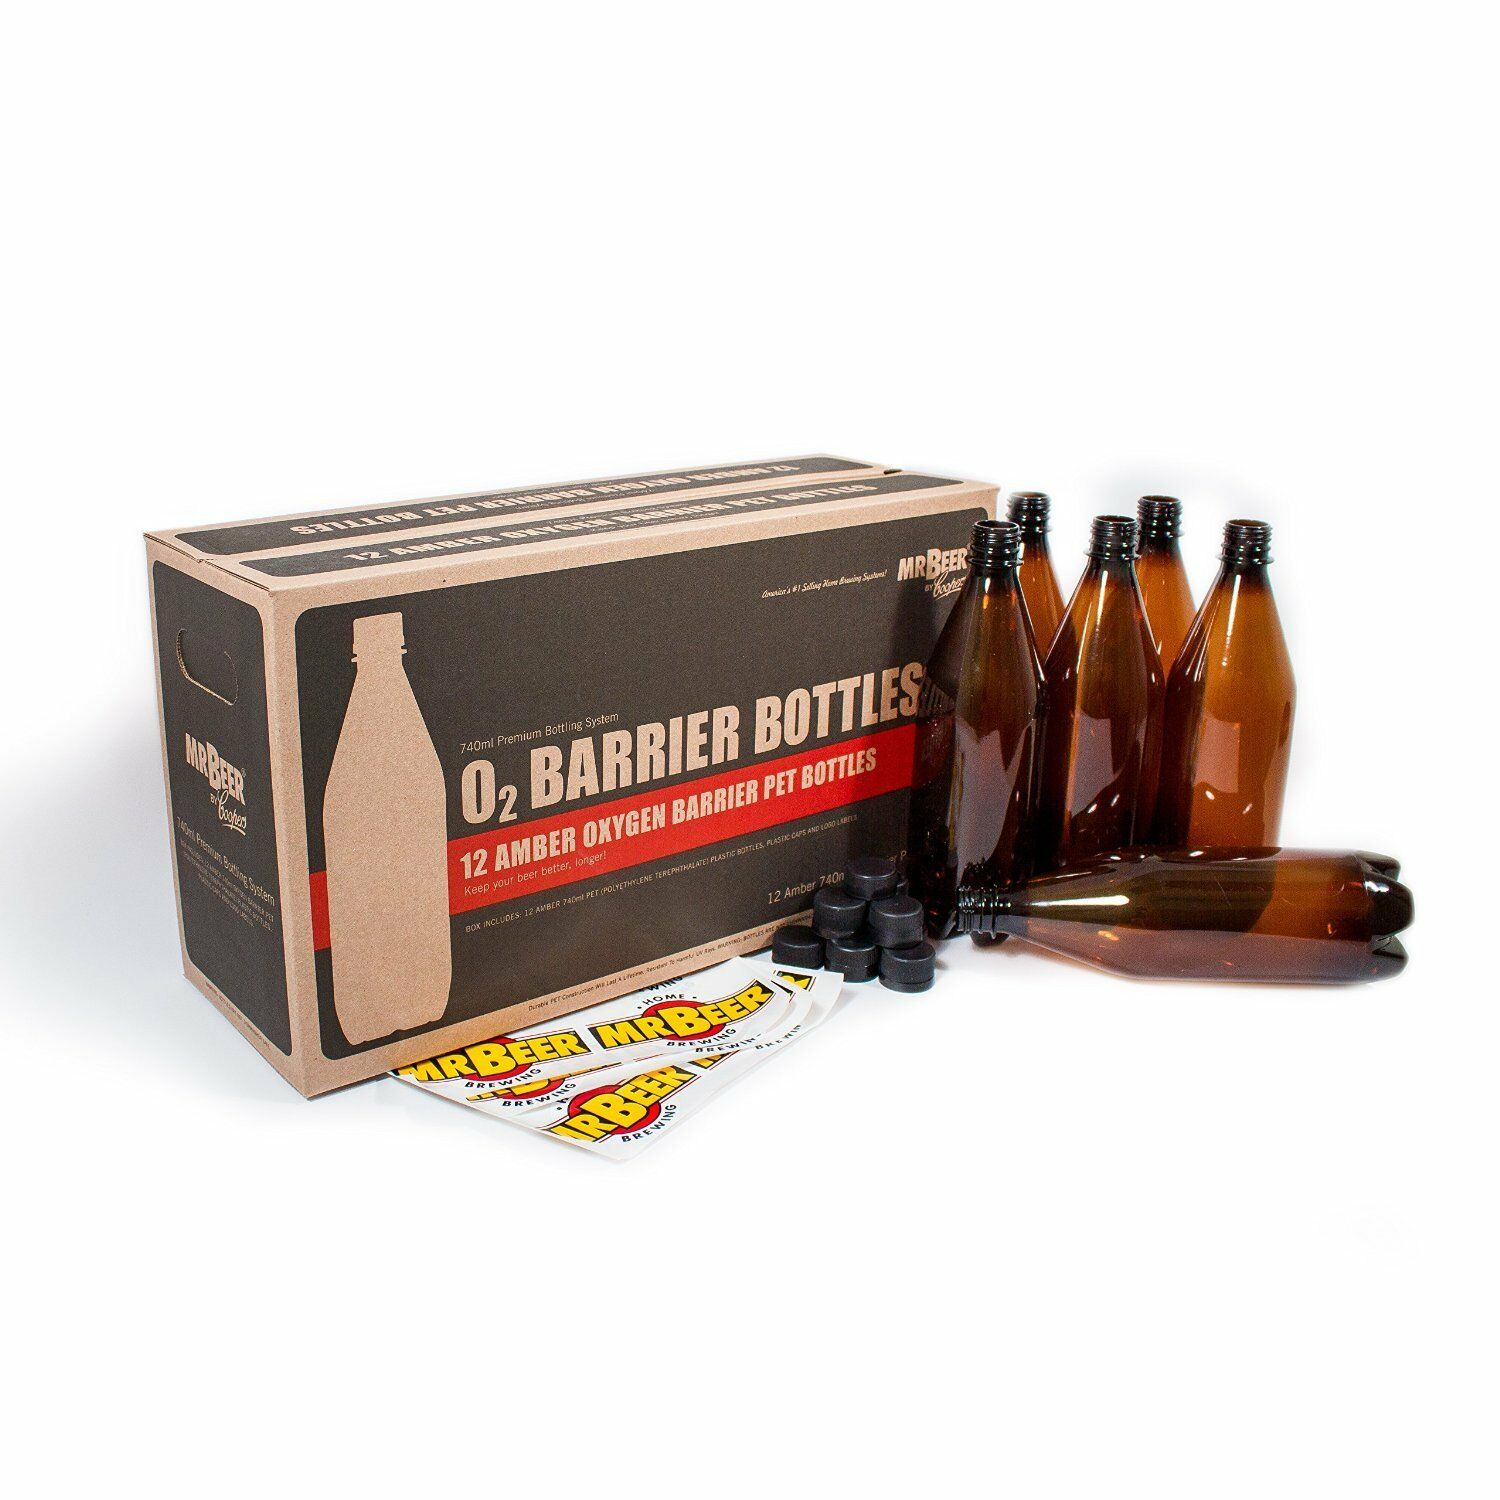 s l1600 Mr. Beer 740ml Deluxe Home Brewing Beer Bottling Set, New, Free Shipping